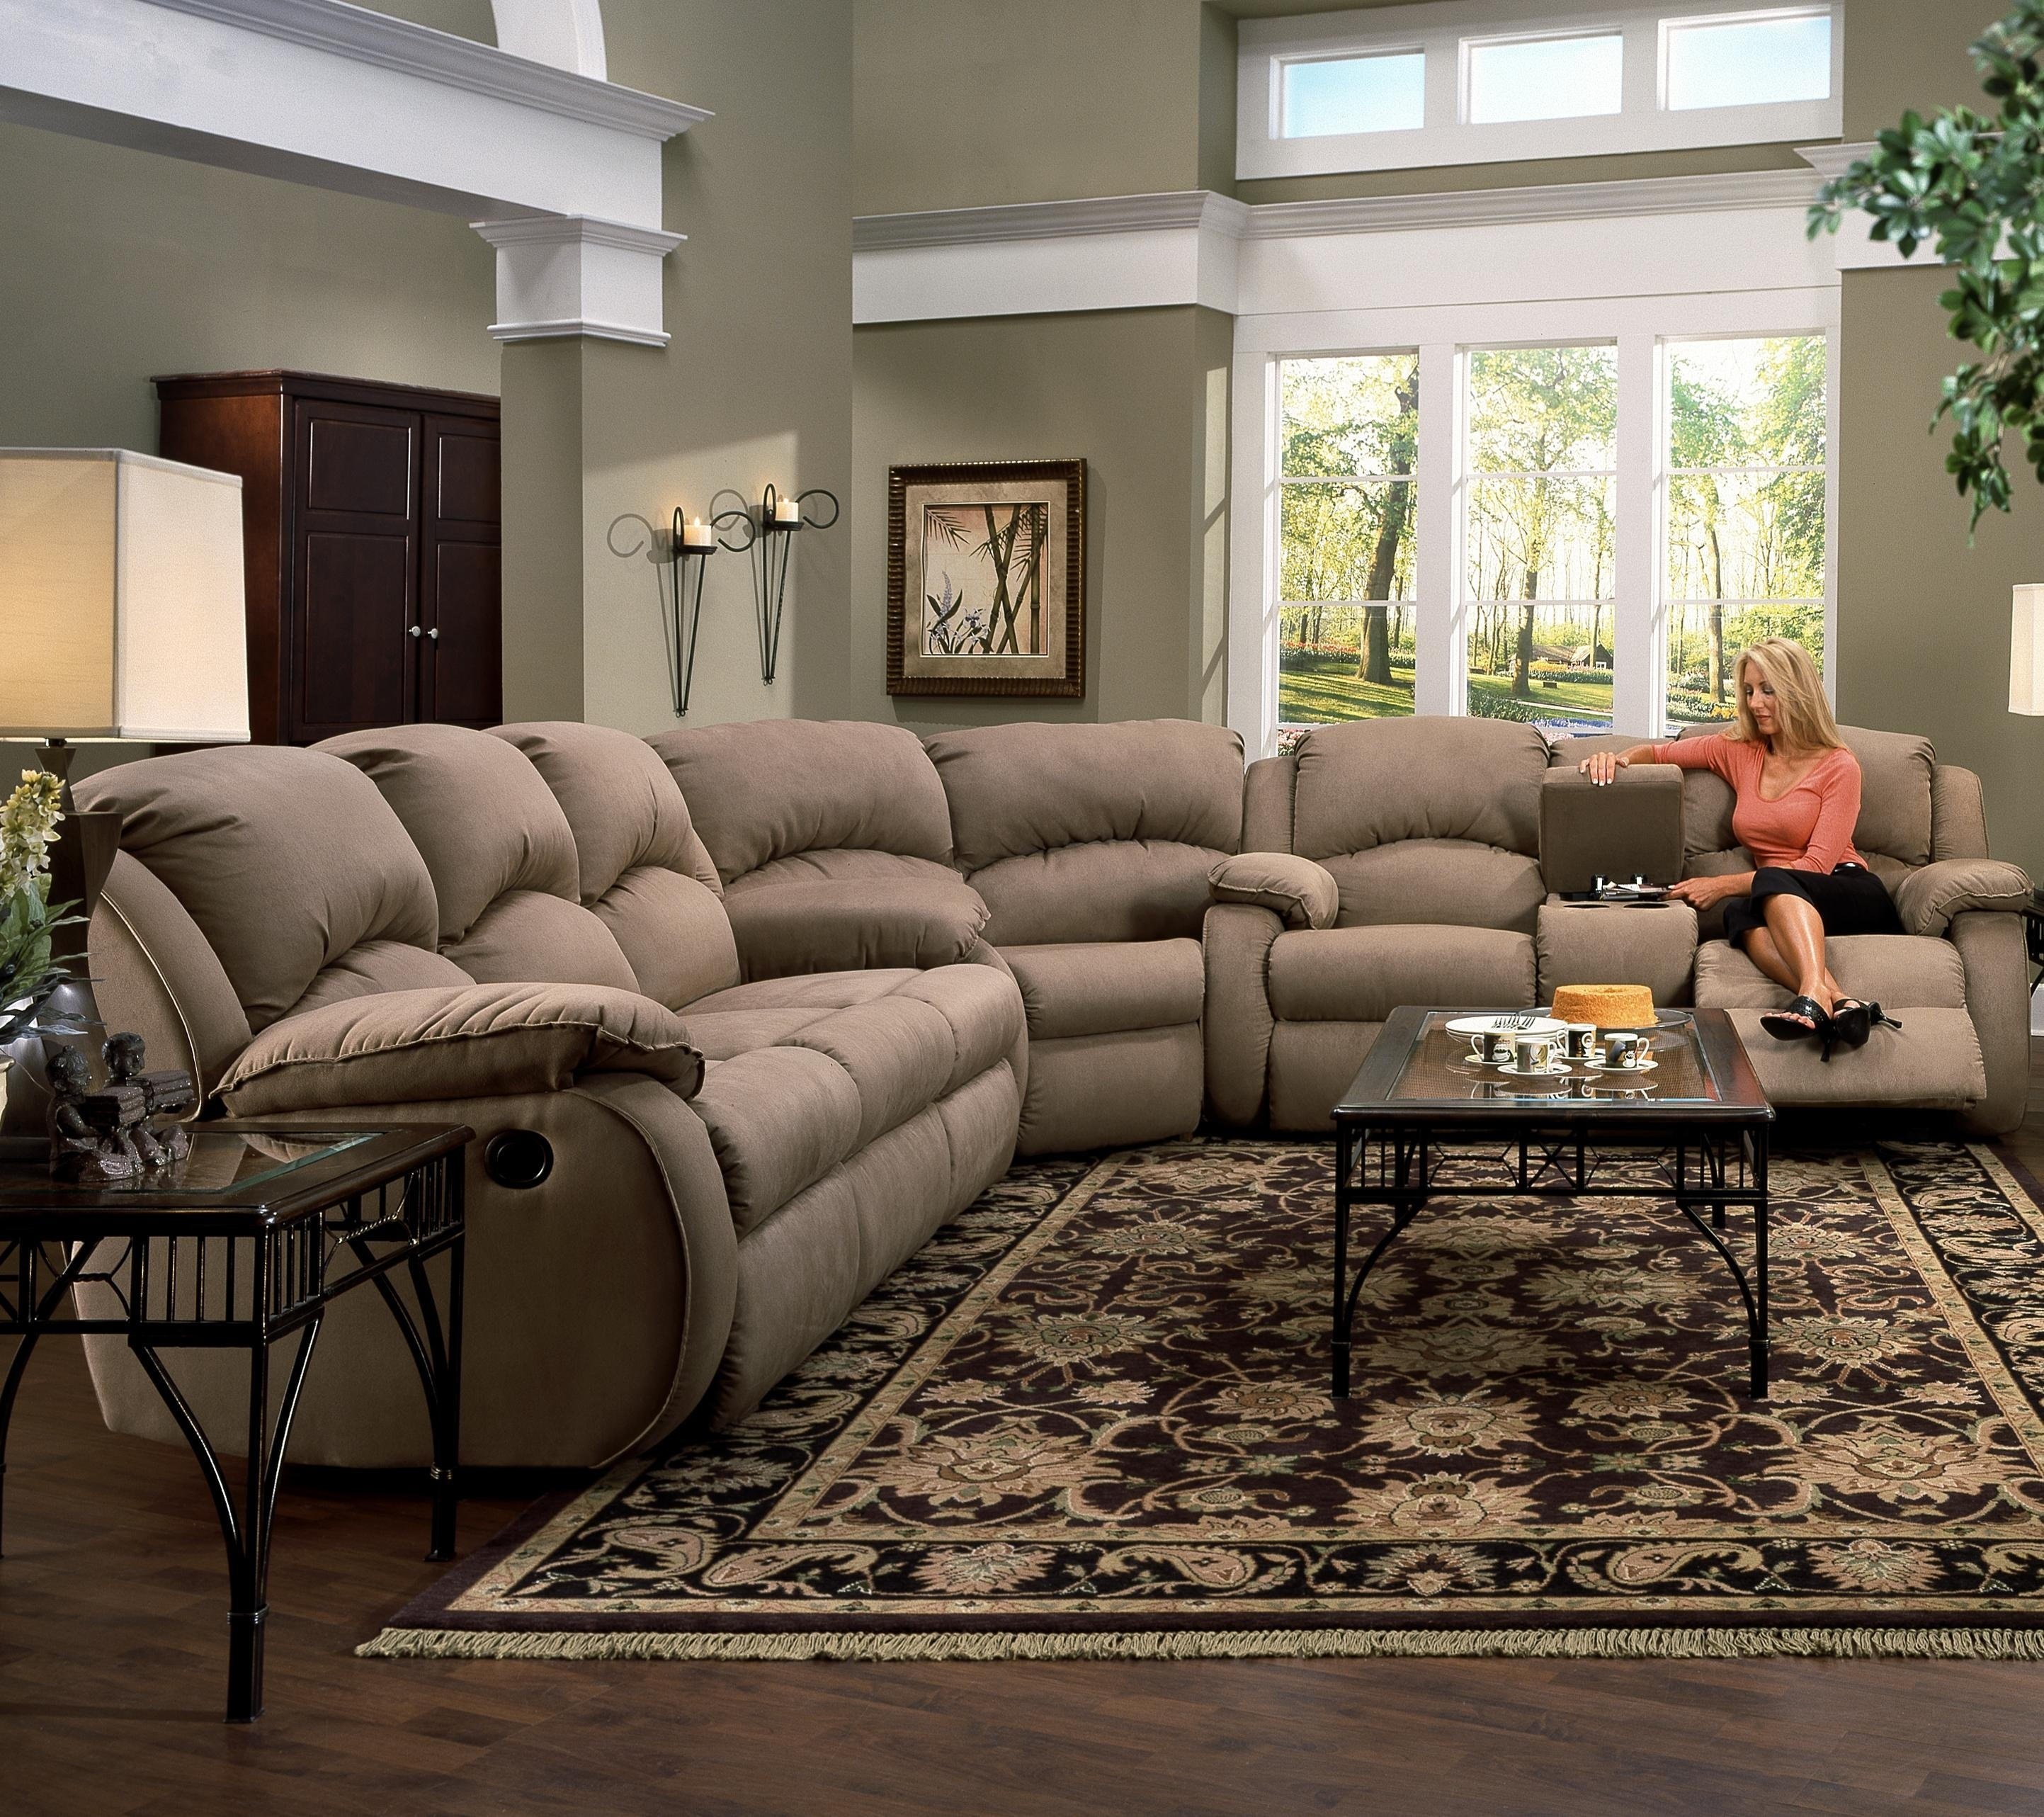 Reclining Sectional Sofas | Aifaresidency Throughout Sectional Sofas That Can Be Rearranged (Image 8 of 10)